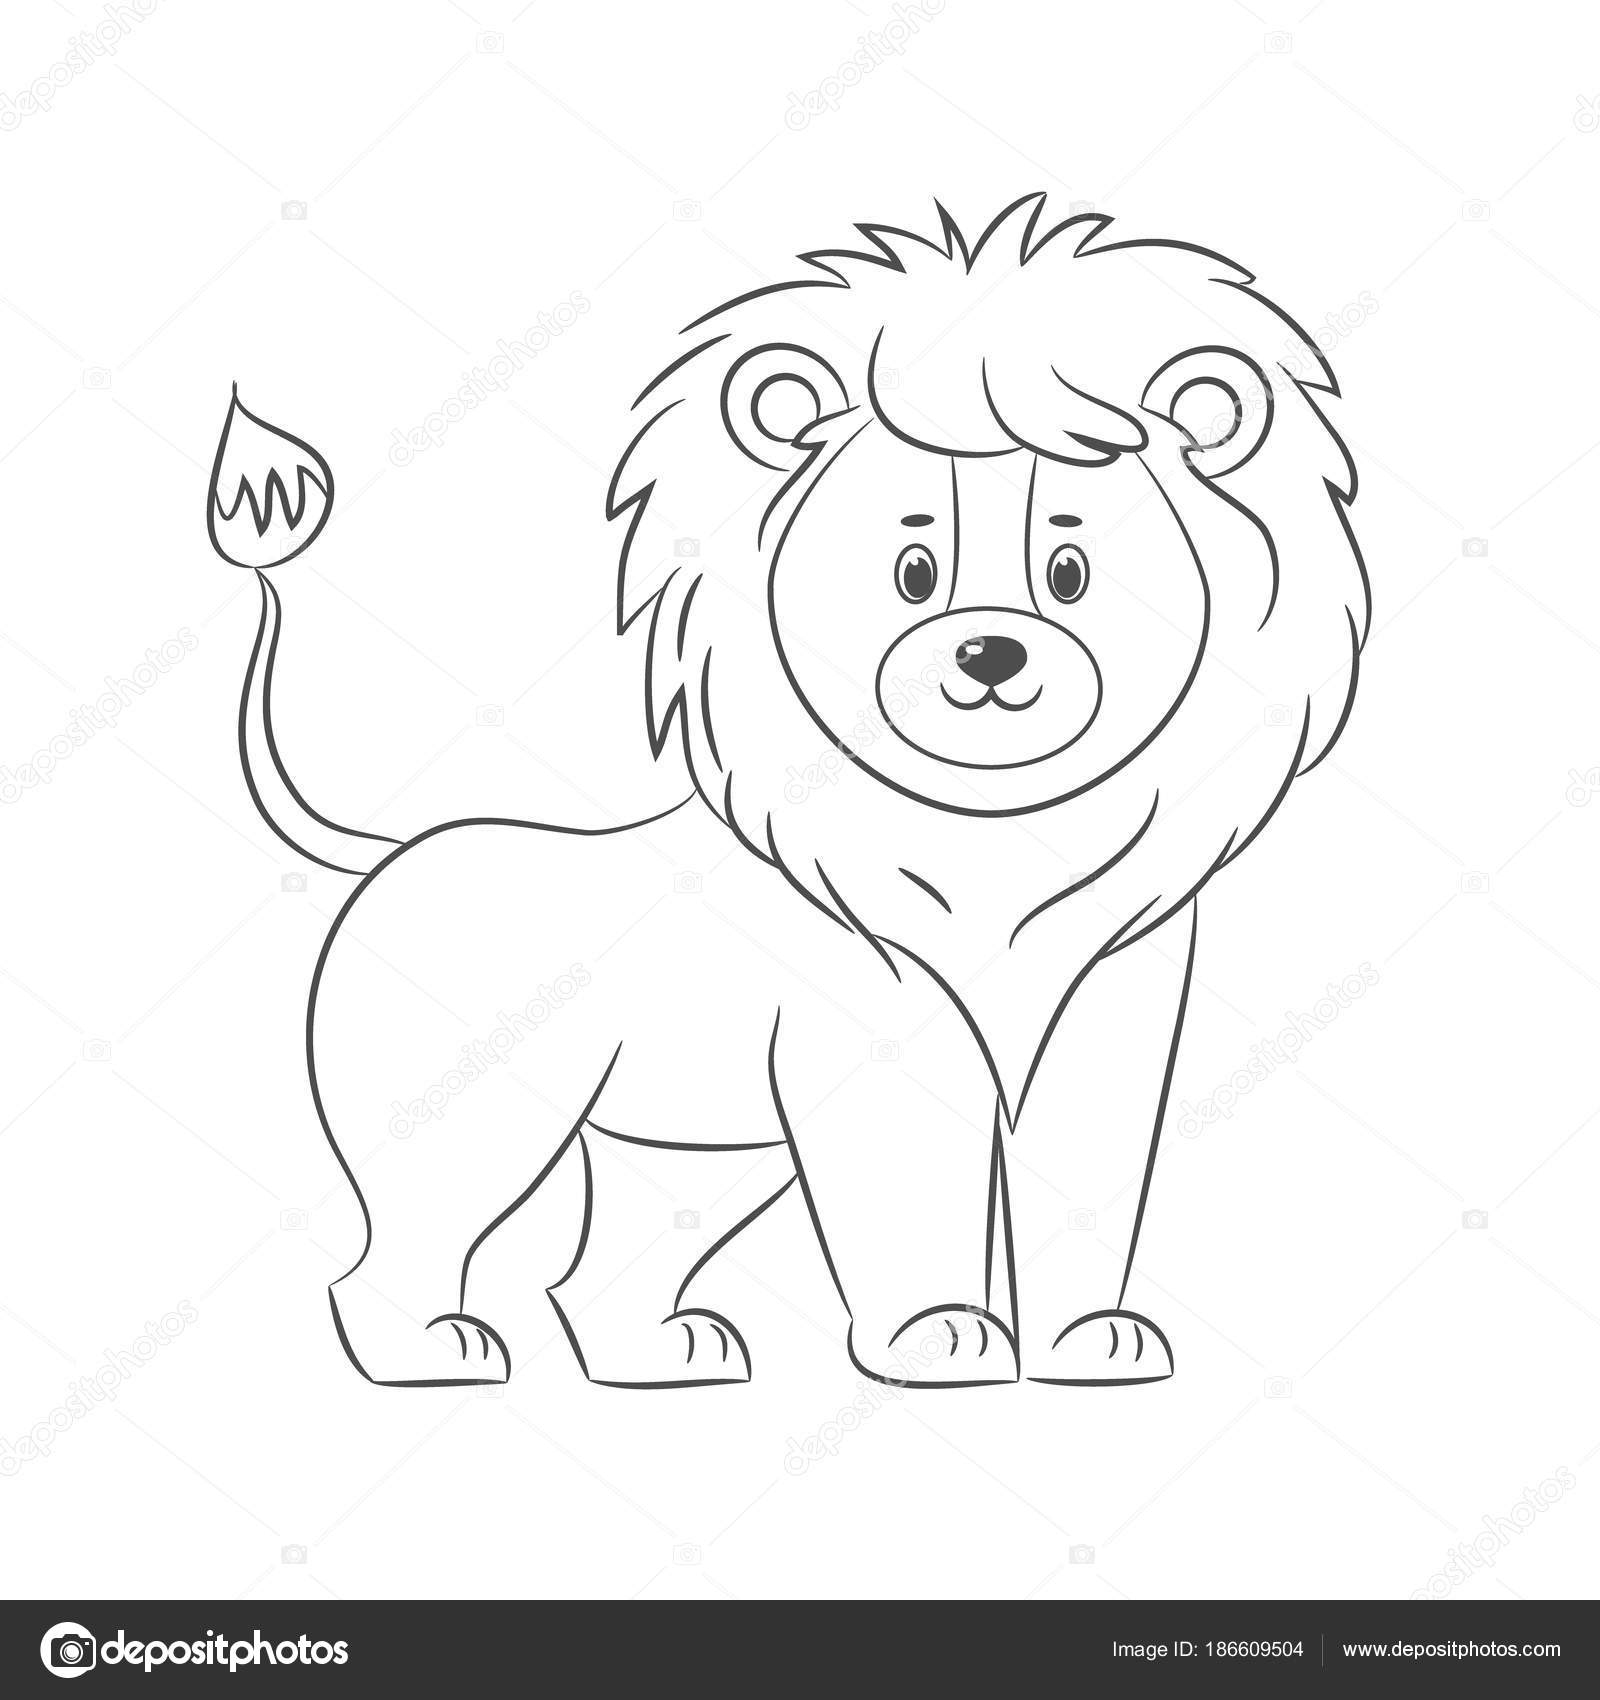 Lion for coloring book. — Stock Vector © romalka #186609504